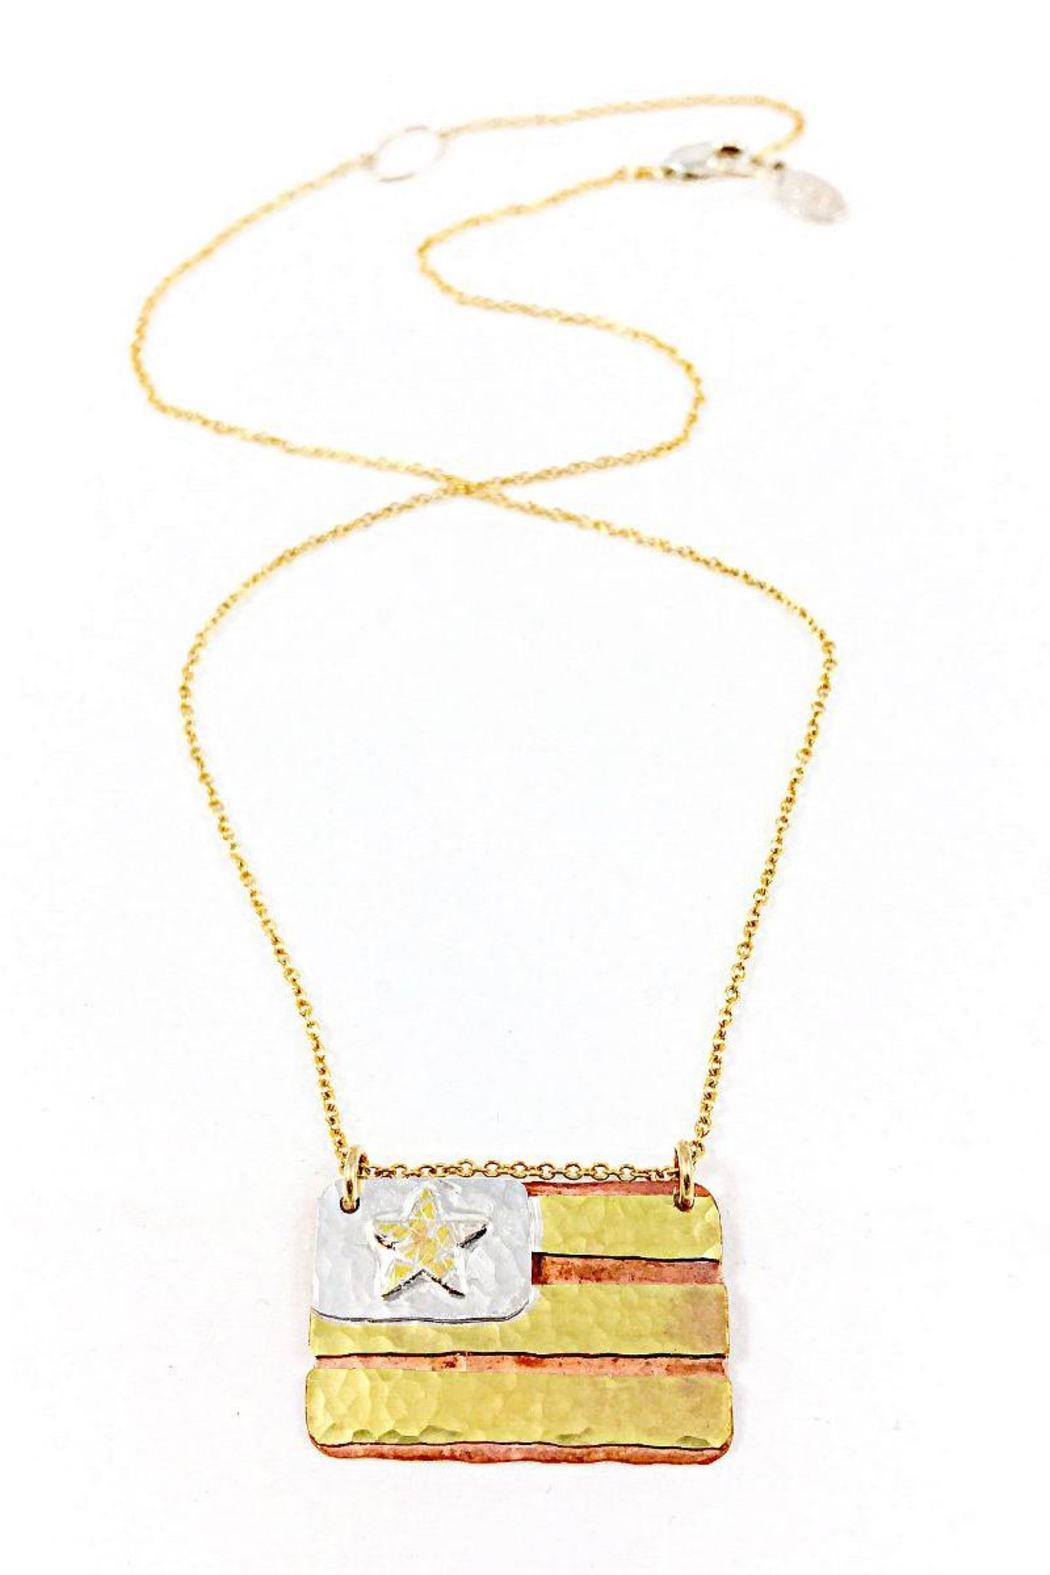 american pendant horse gold us necklace flag s claire